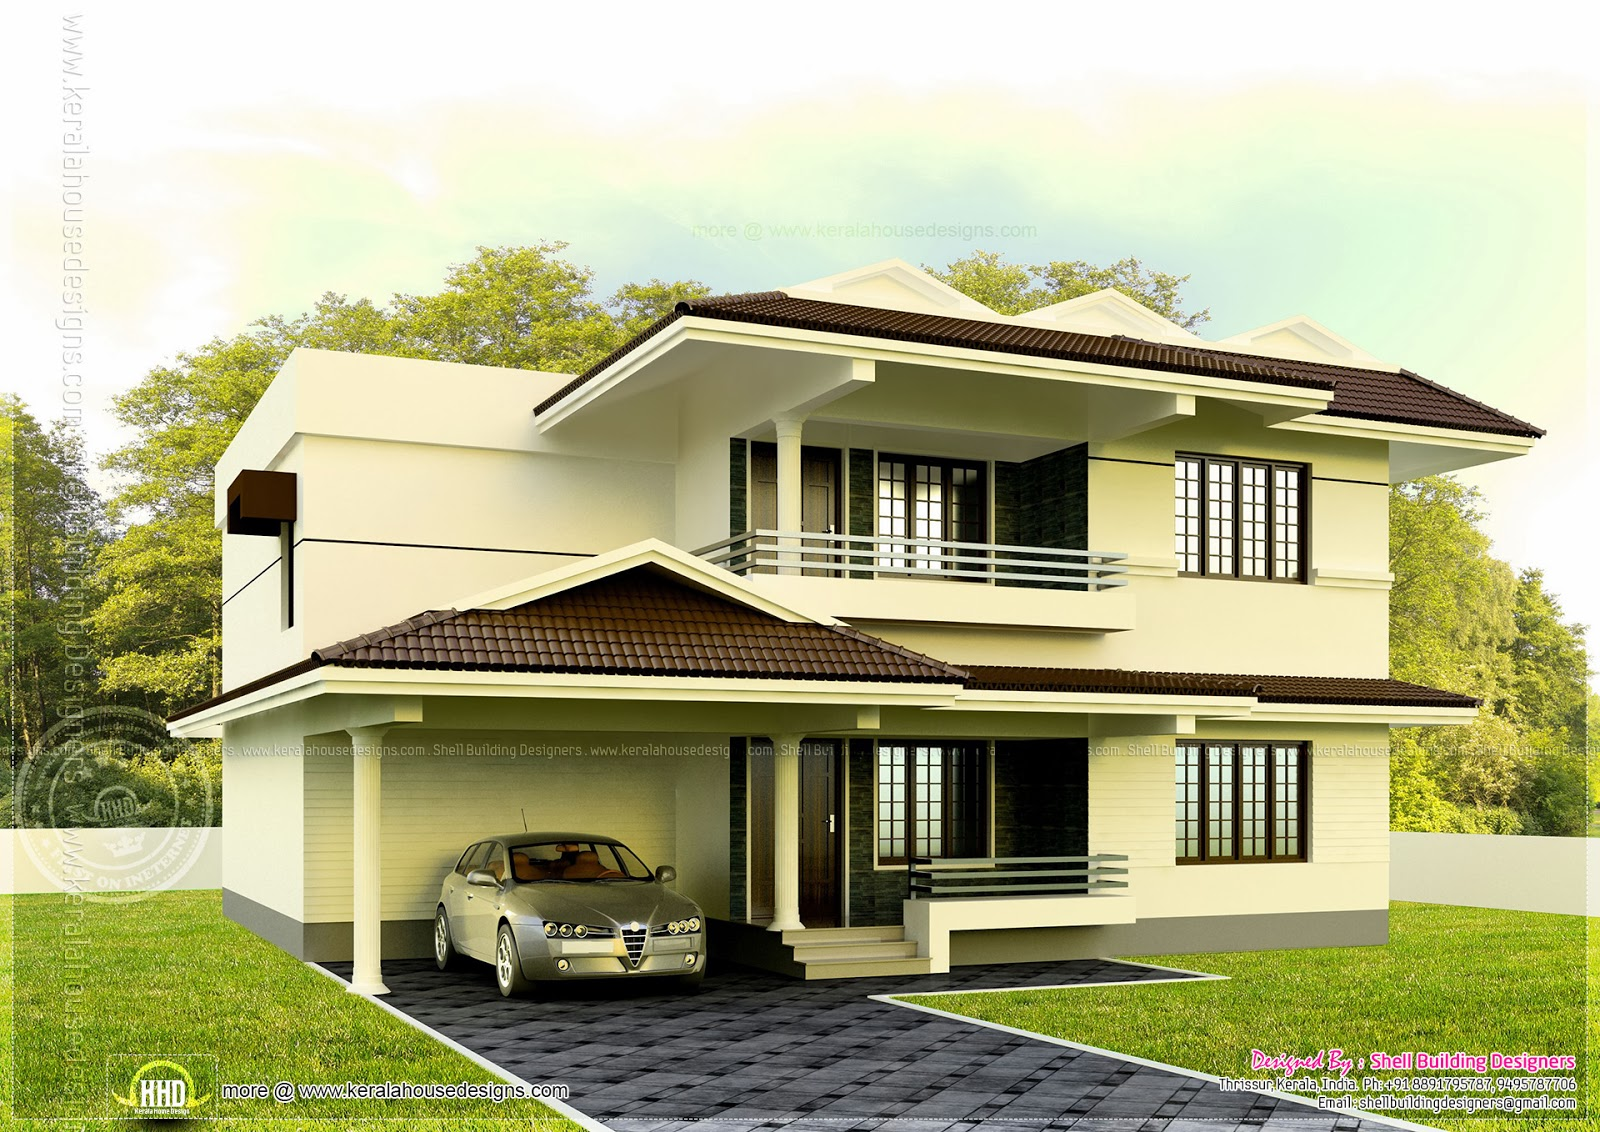 4 bedroom house exterior in 1901 square feet home kerala for 4 bedroom house designs in kerala